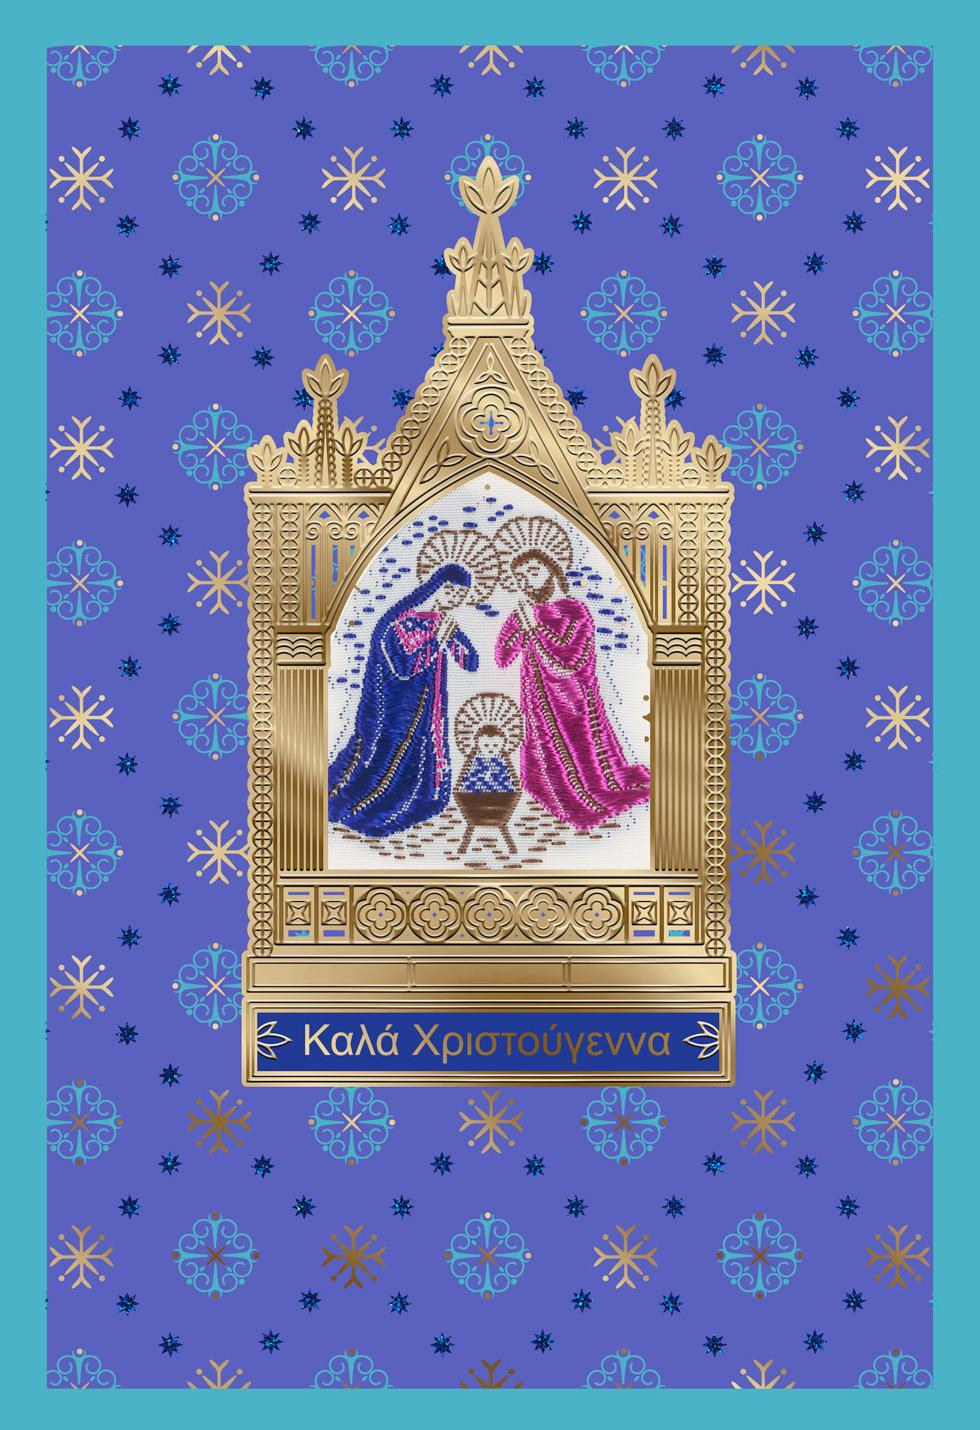 Birthday Card For Husband Ornate Nativity Scene Greek-language Christmas Card